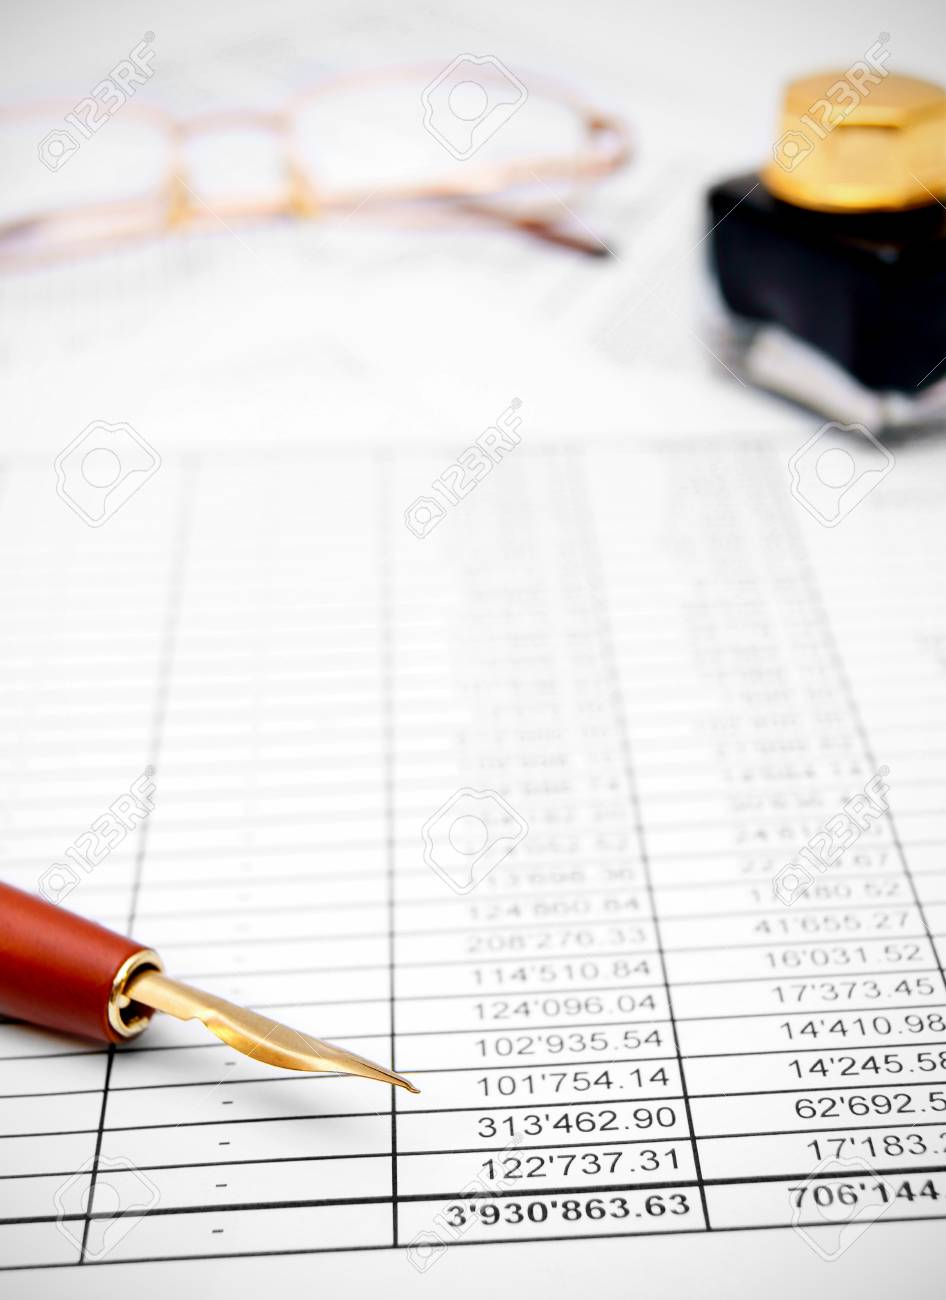 Pen, ink and glasses on the documents Stock Photo - 17217500